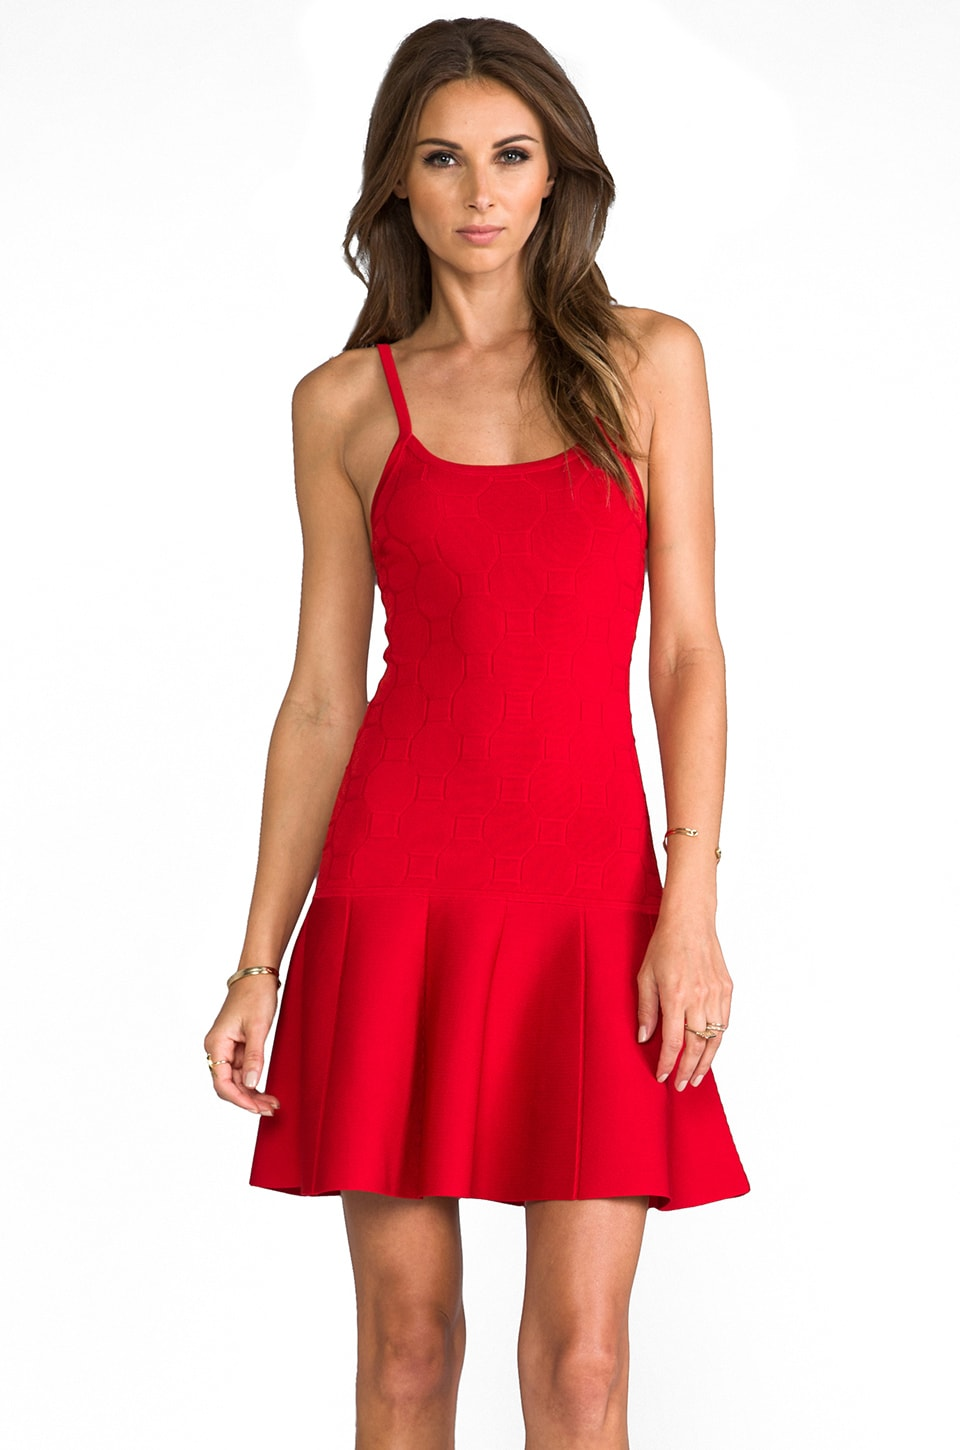 Parker Ashley Dress in Red